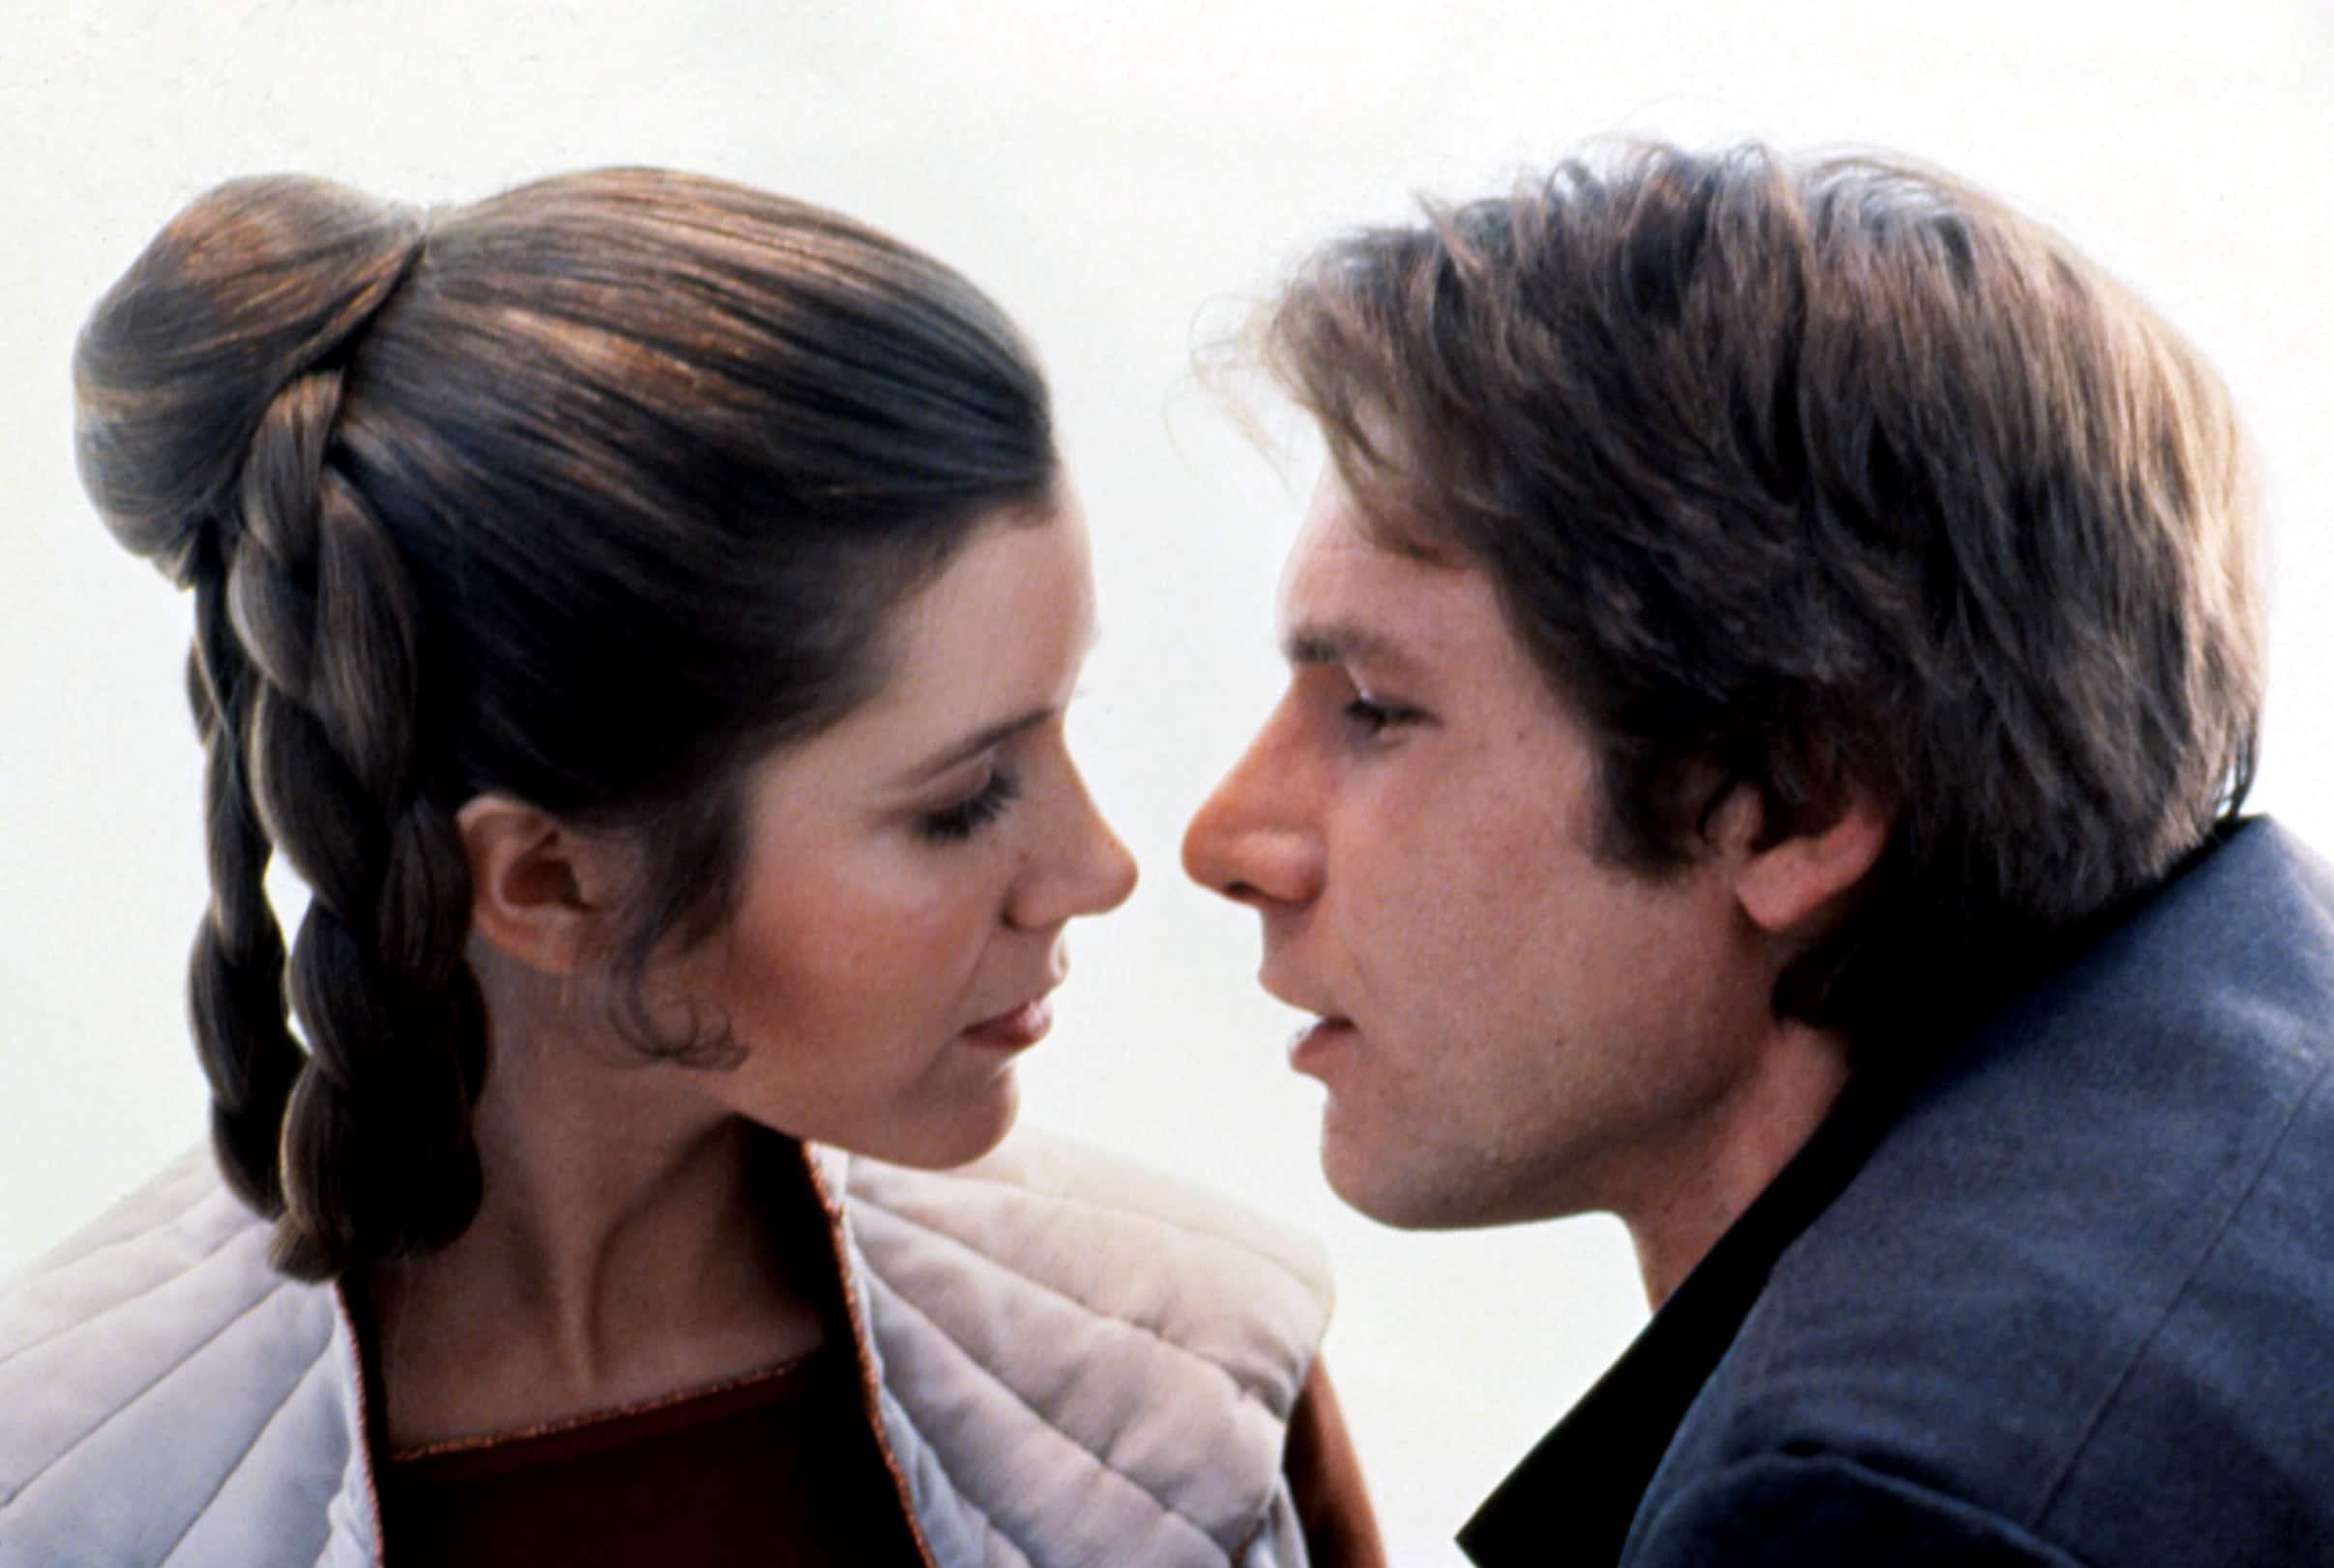 STAR WARS: EPISODE V - THE EMPIRE STRIKES BACK, Carrie Fisher, Harrison Ford